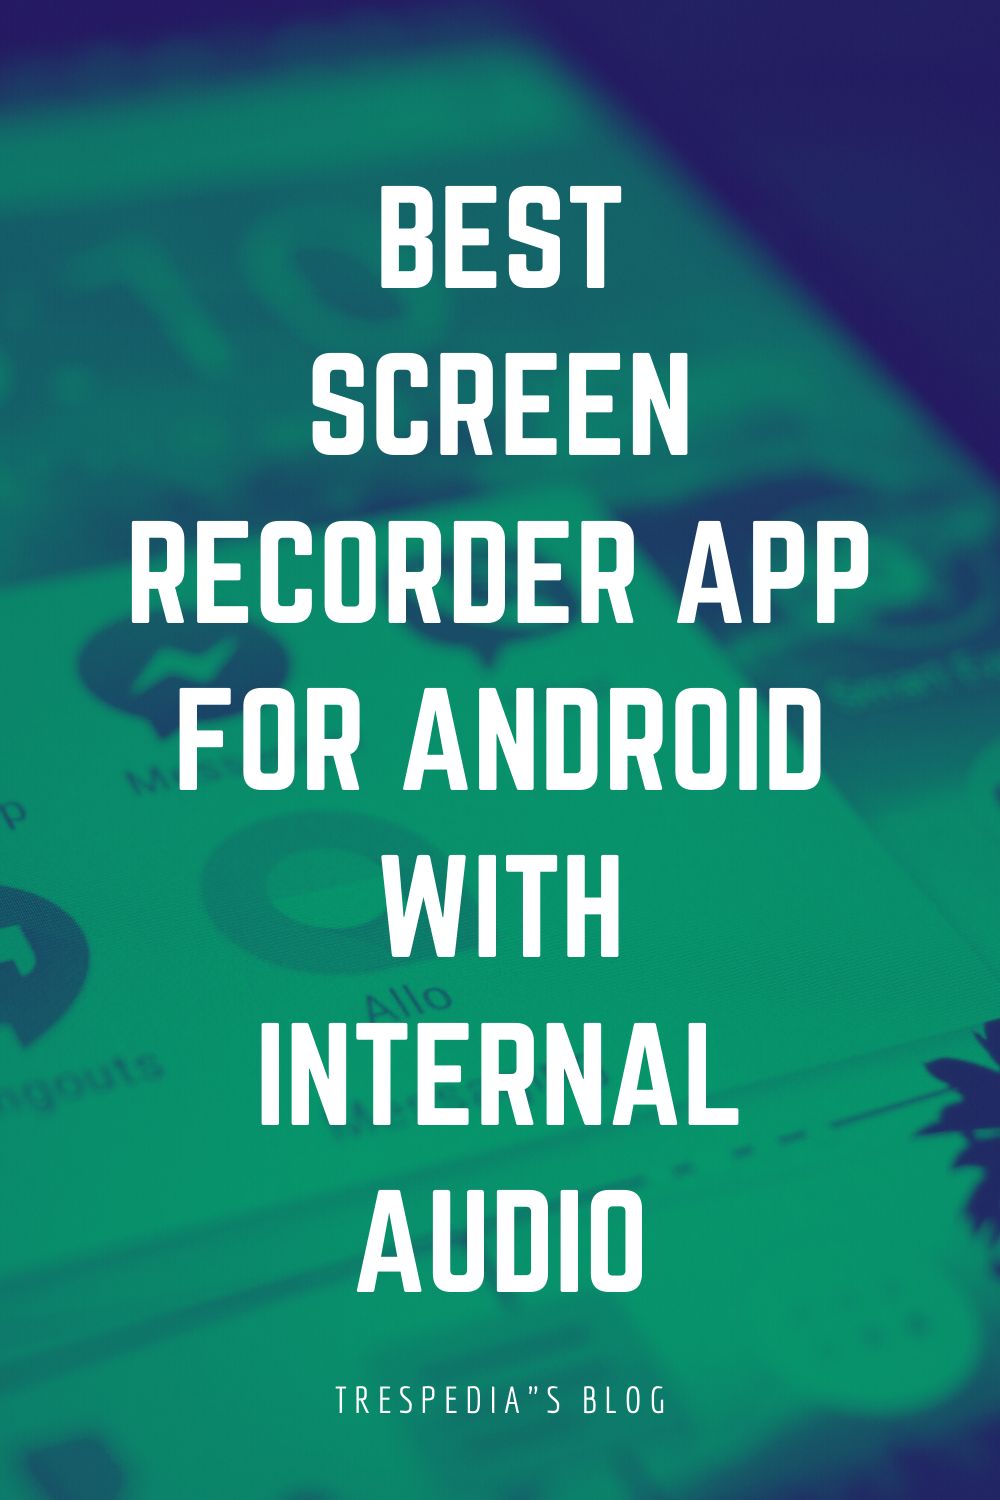 Here is a list of best apps to record the screen of android devices with internal audio. *CLICK the link to see the article. You can also record audio of Android 9 devices. Apps are free to download and can capture all the screens. #android #screen #recorder #record #capture #best #apps #free #internal #audio #recording #pubgaudio #recordgame #game #audios #sound #internalaudio #pie #androidq #android10 #androidpie